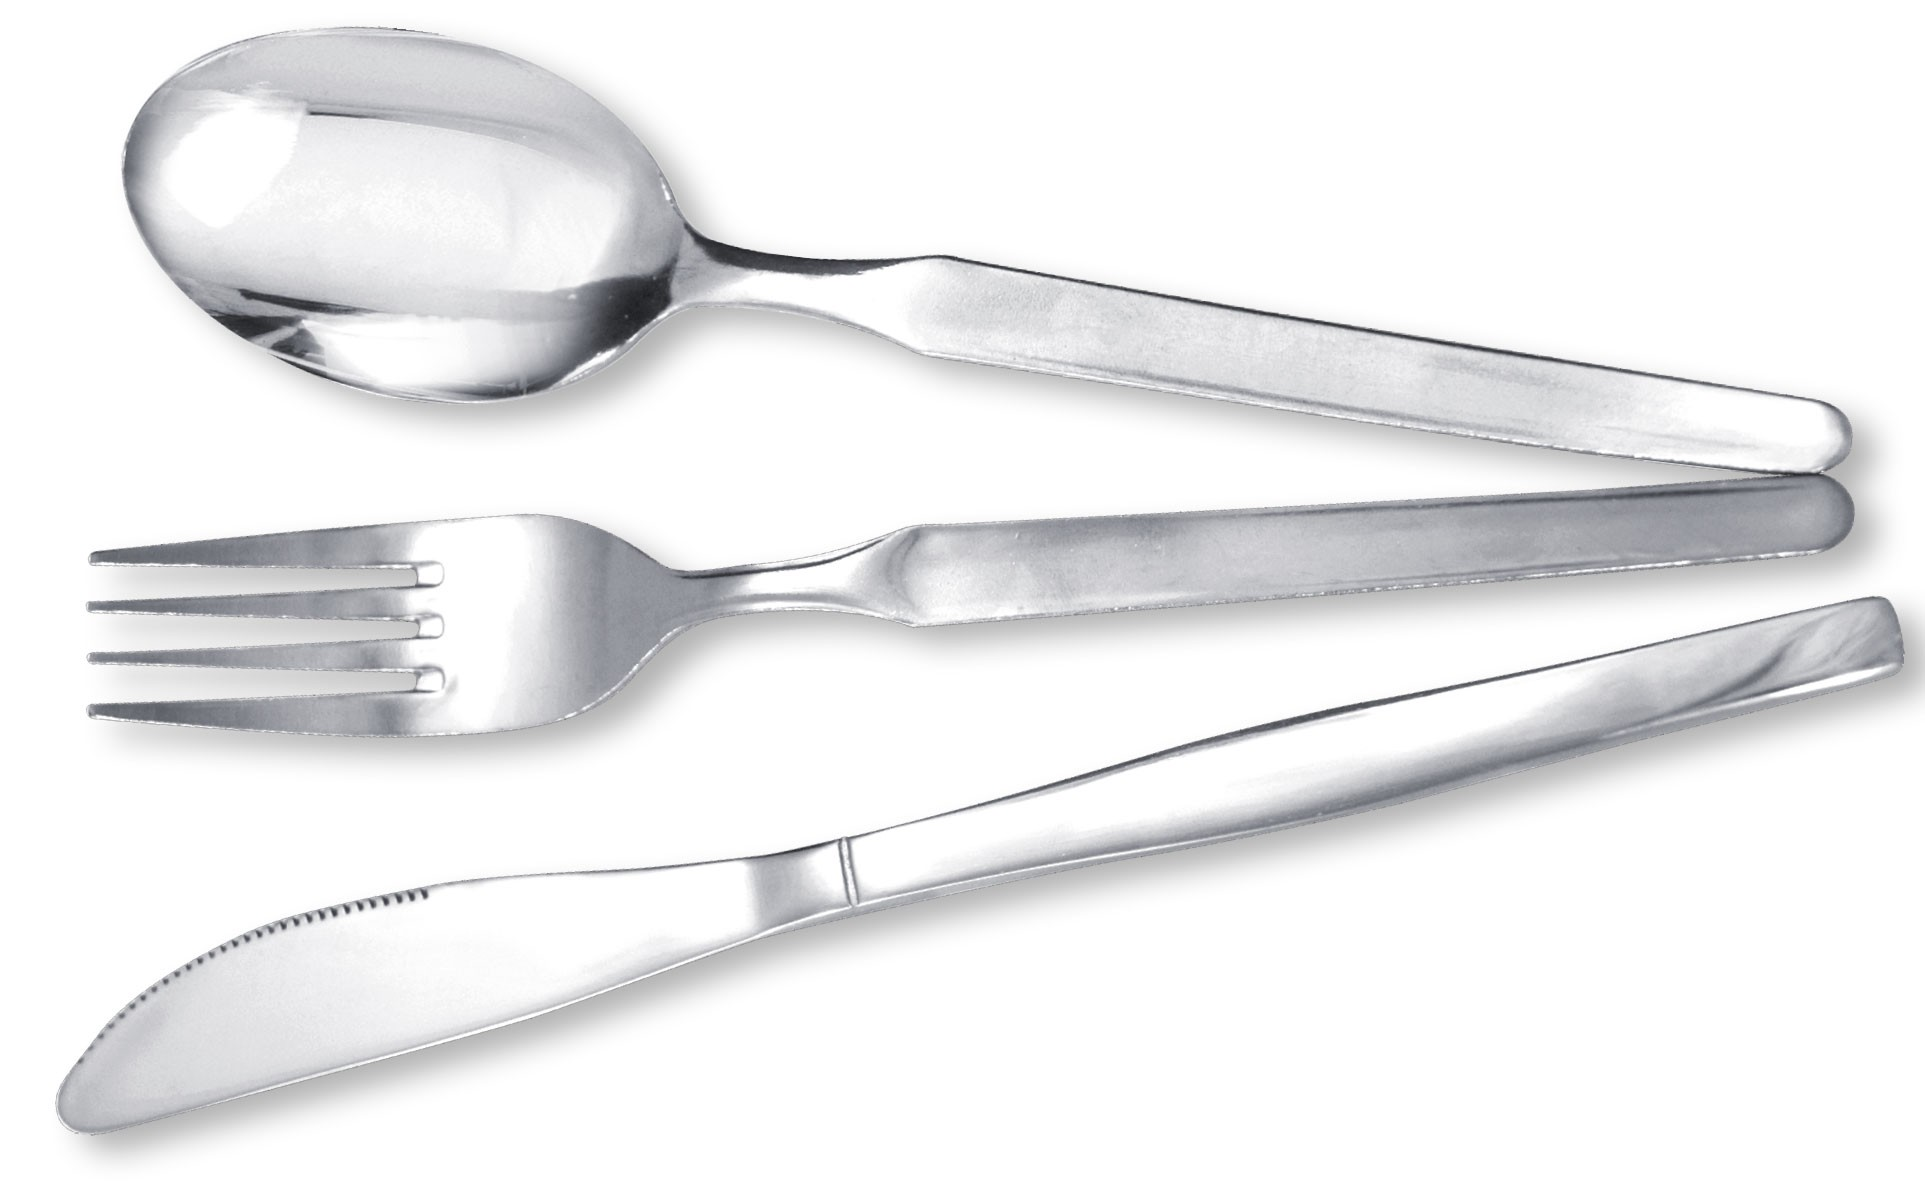 Stainless steel 18.0 tumble cutlery